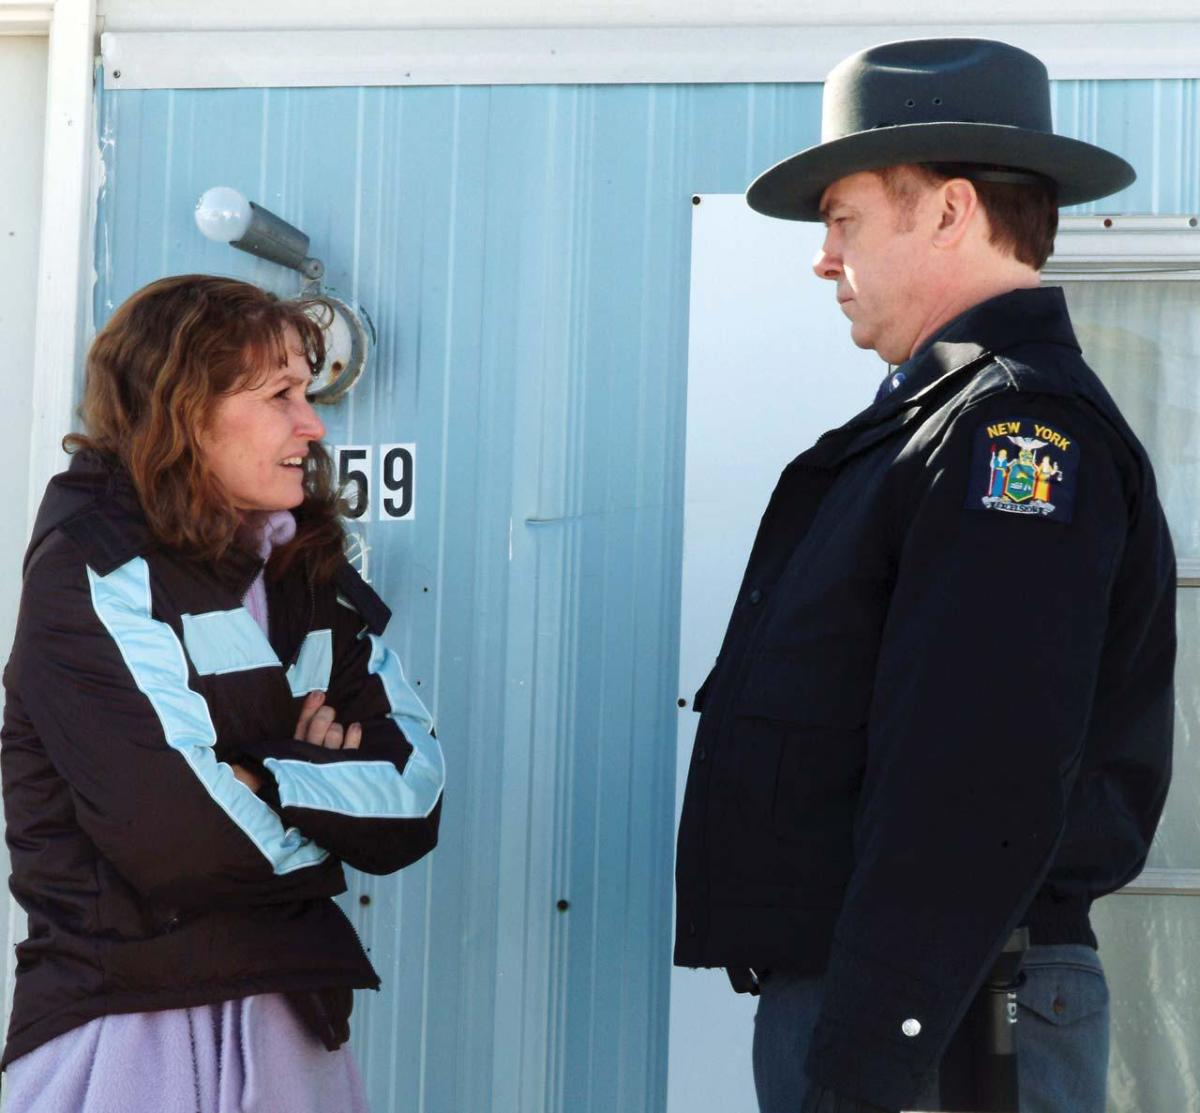 Melissa Leo as Ray Eddy and Michael O'Keefe as Trooper Finnerty in Frozen River (PRODUCTION PHOTOS: JORY SUTTON COURTESY : SONY PICTURES CLASSICS)